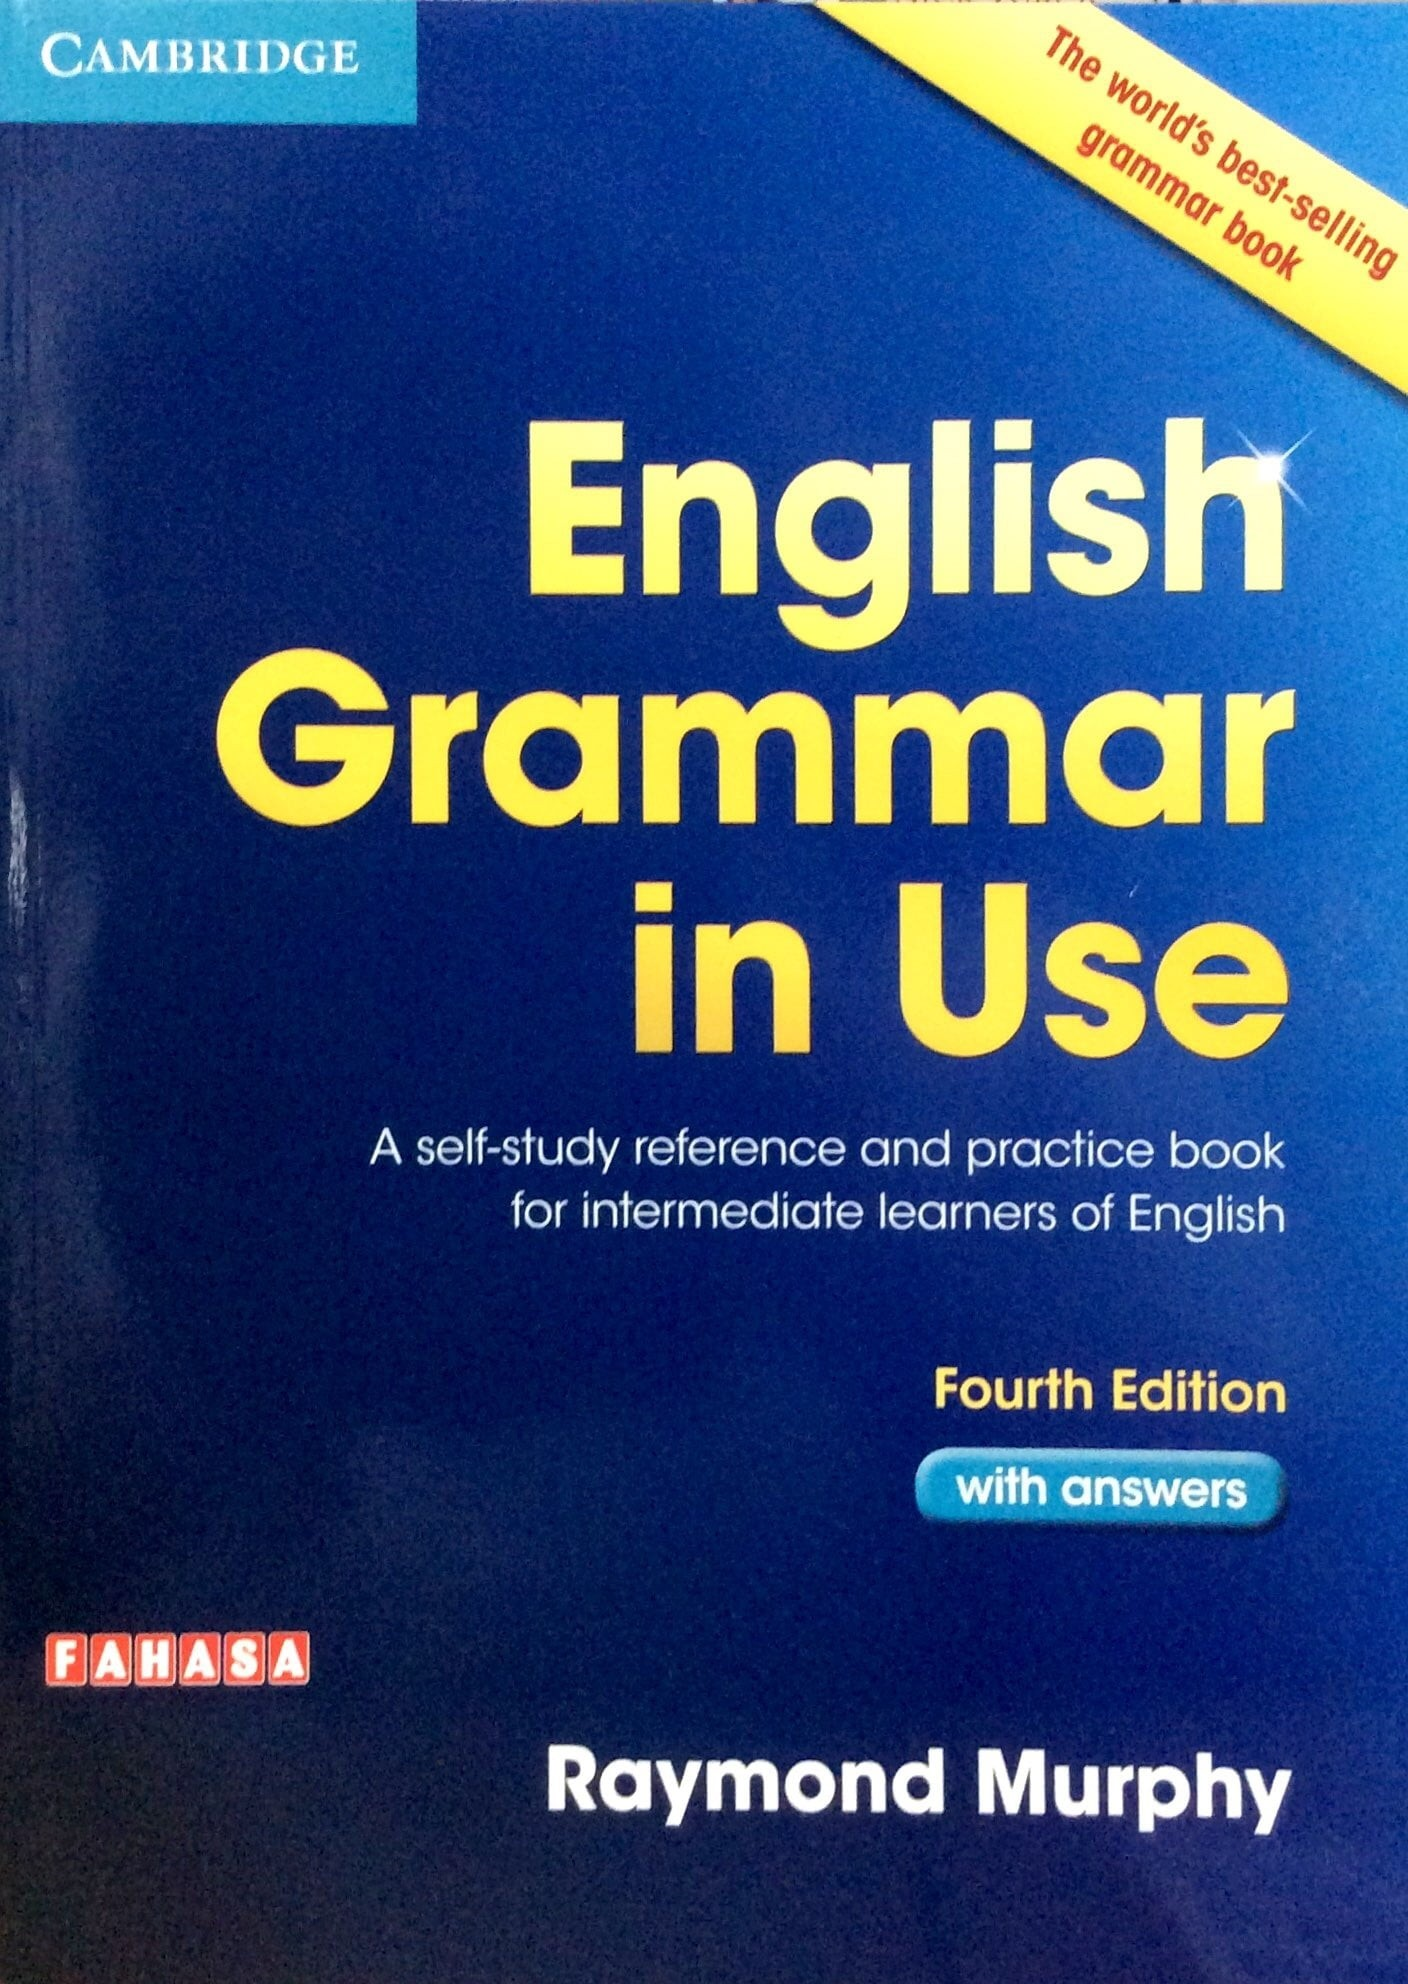 Image result for english grammar in use